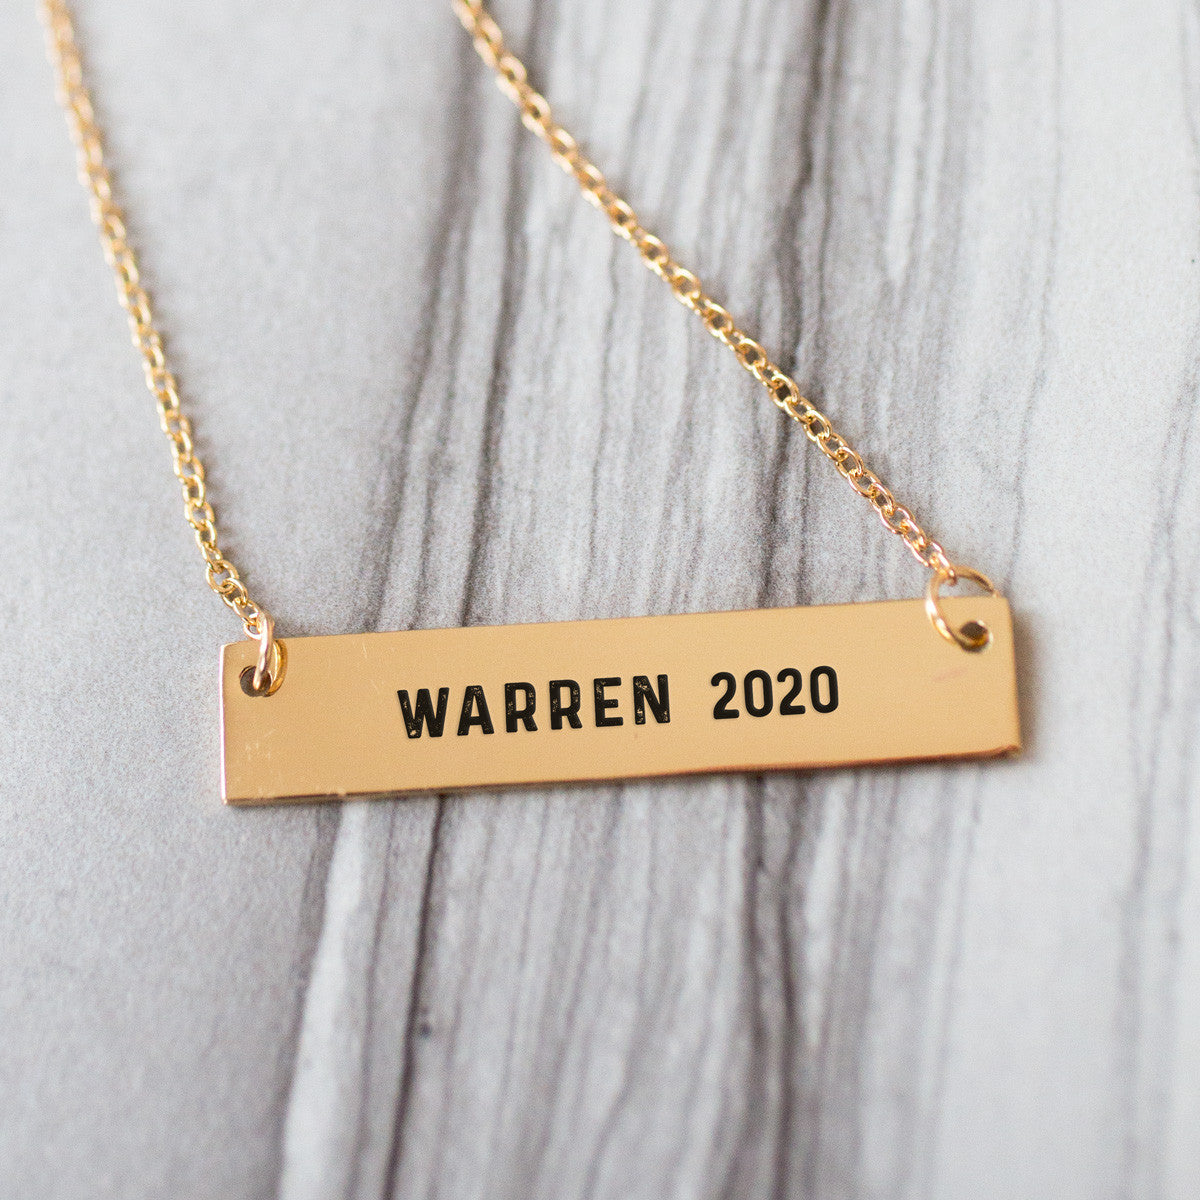 Warren 2020 Gold / Silver Bar Necklace - pipercleo.com